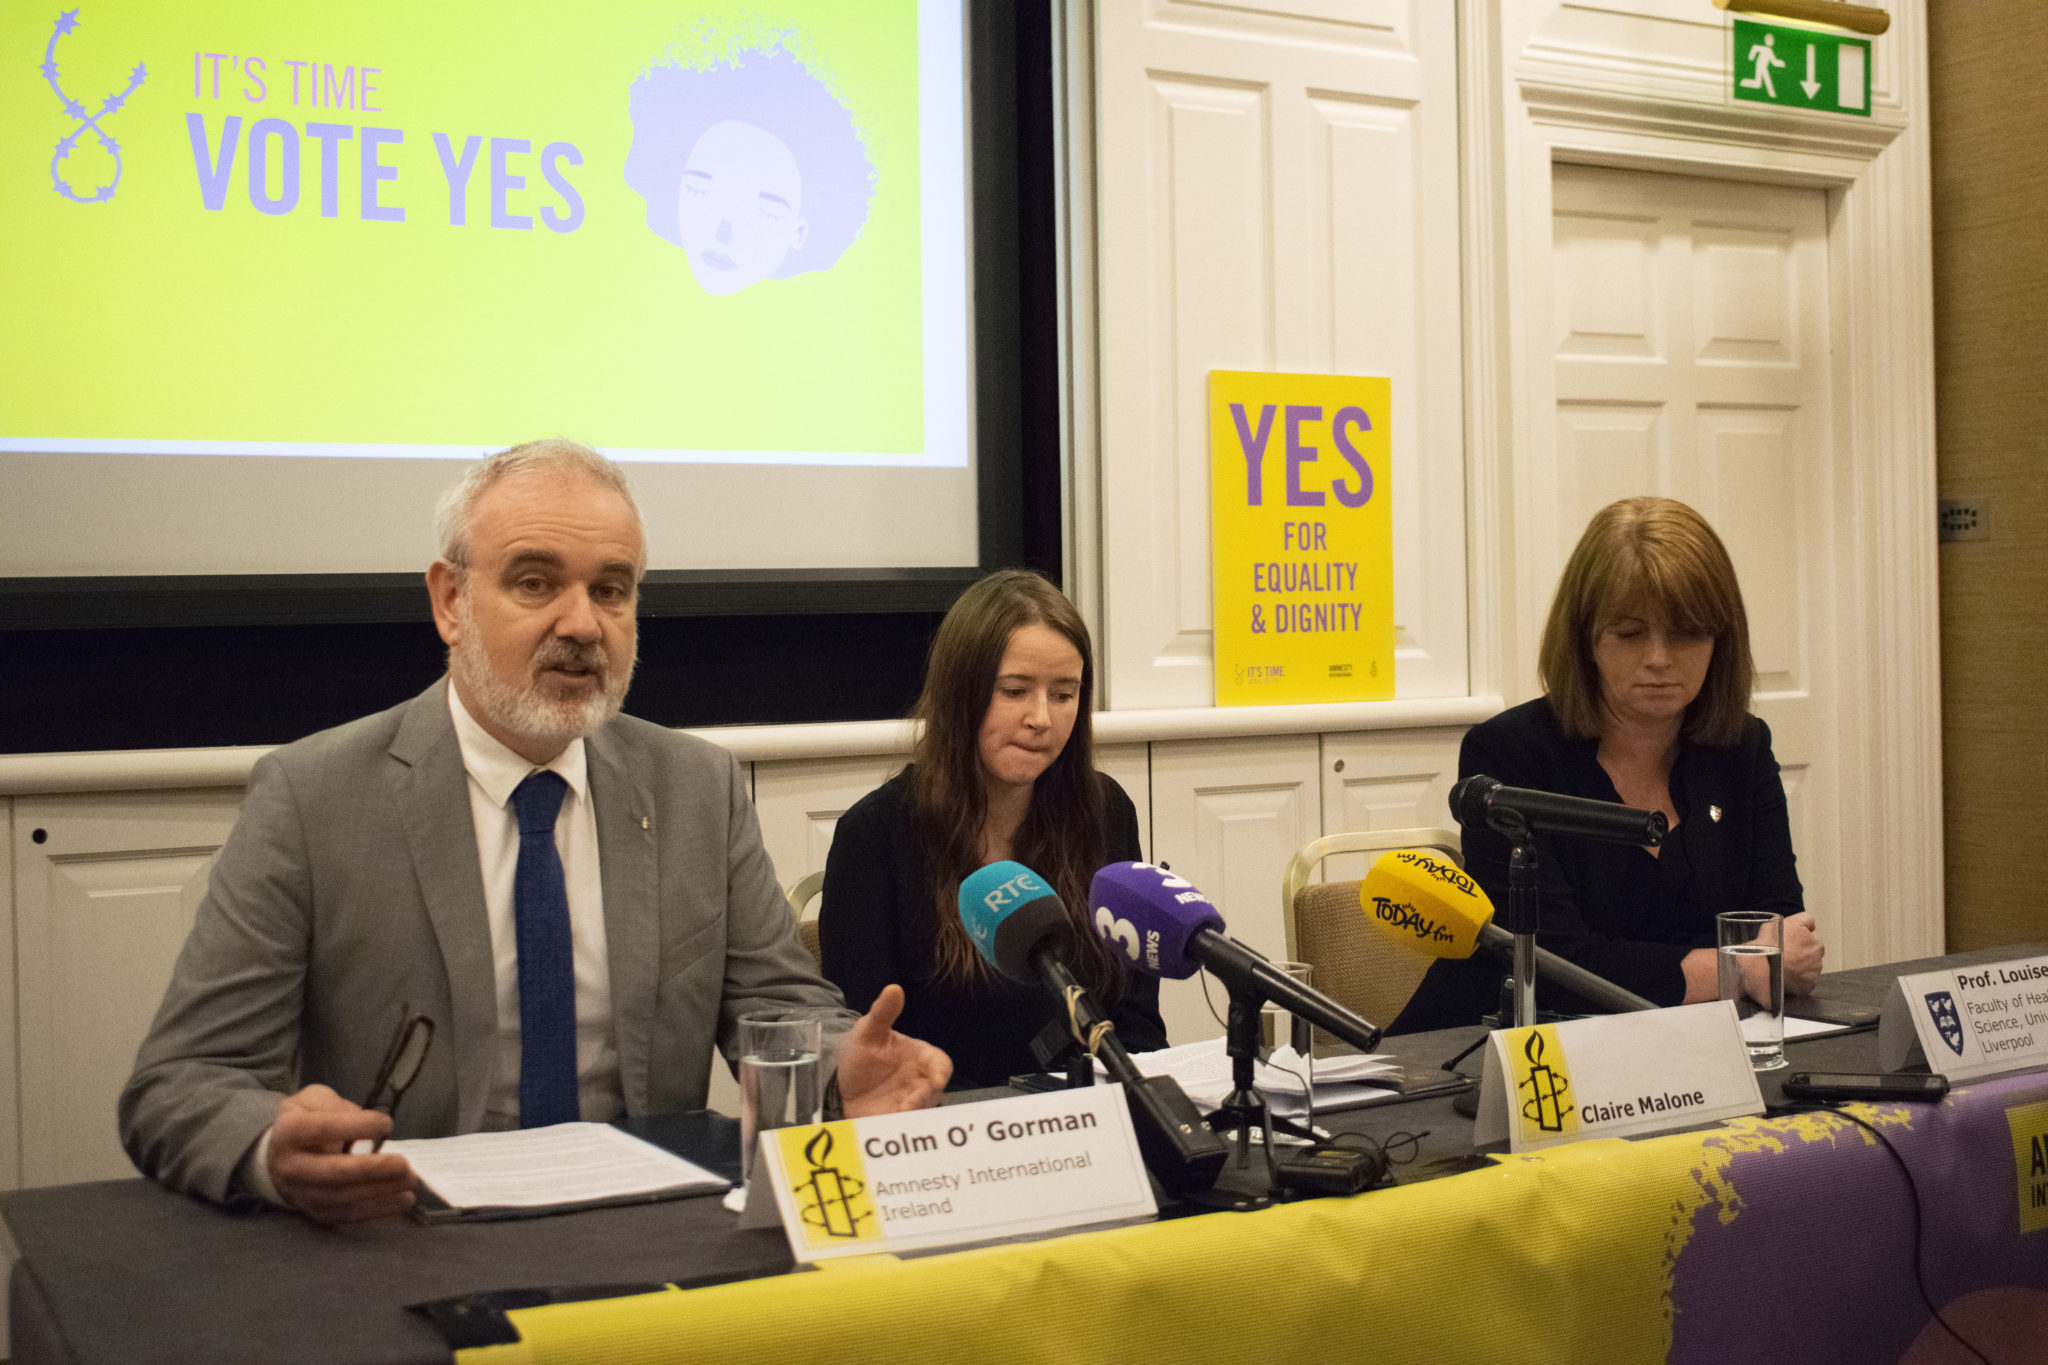 Amnesty presents powerful first-hand testimony showing the Eighth Amendment harms pregnant women's health